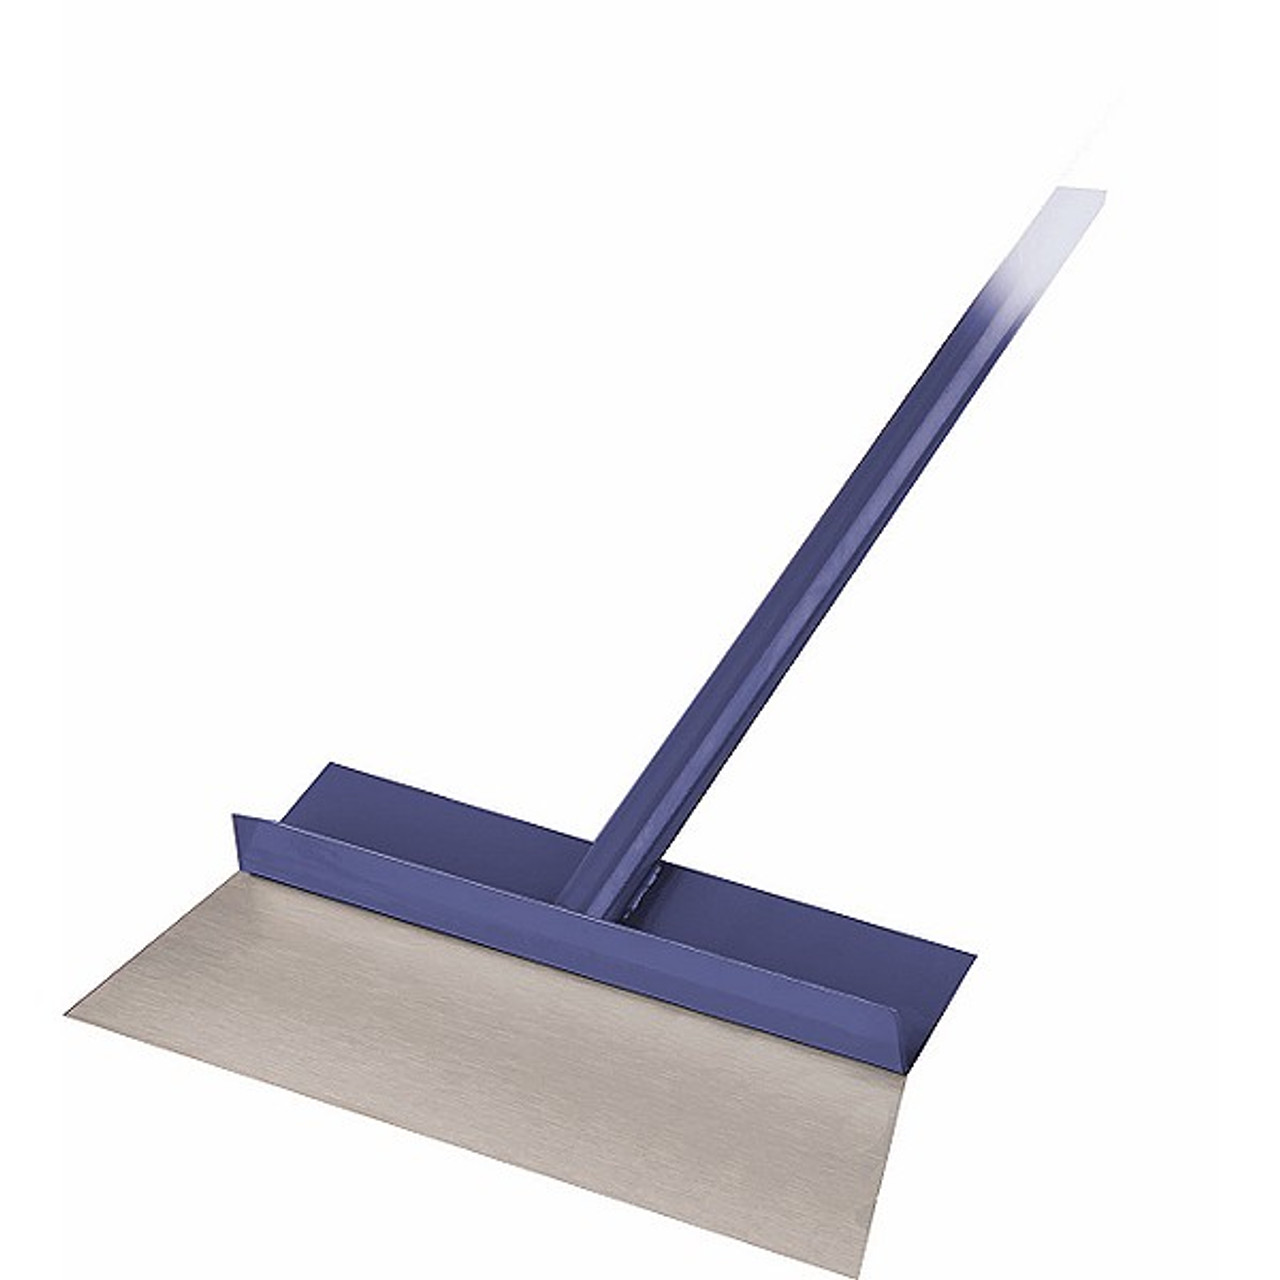 Snow and Ice Melter A Superior Product For Concrete the snow or ice can be removed with a floor scraper